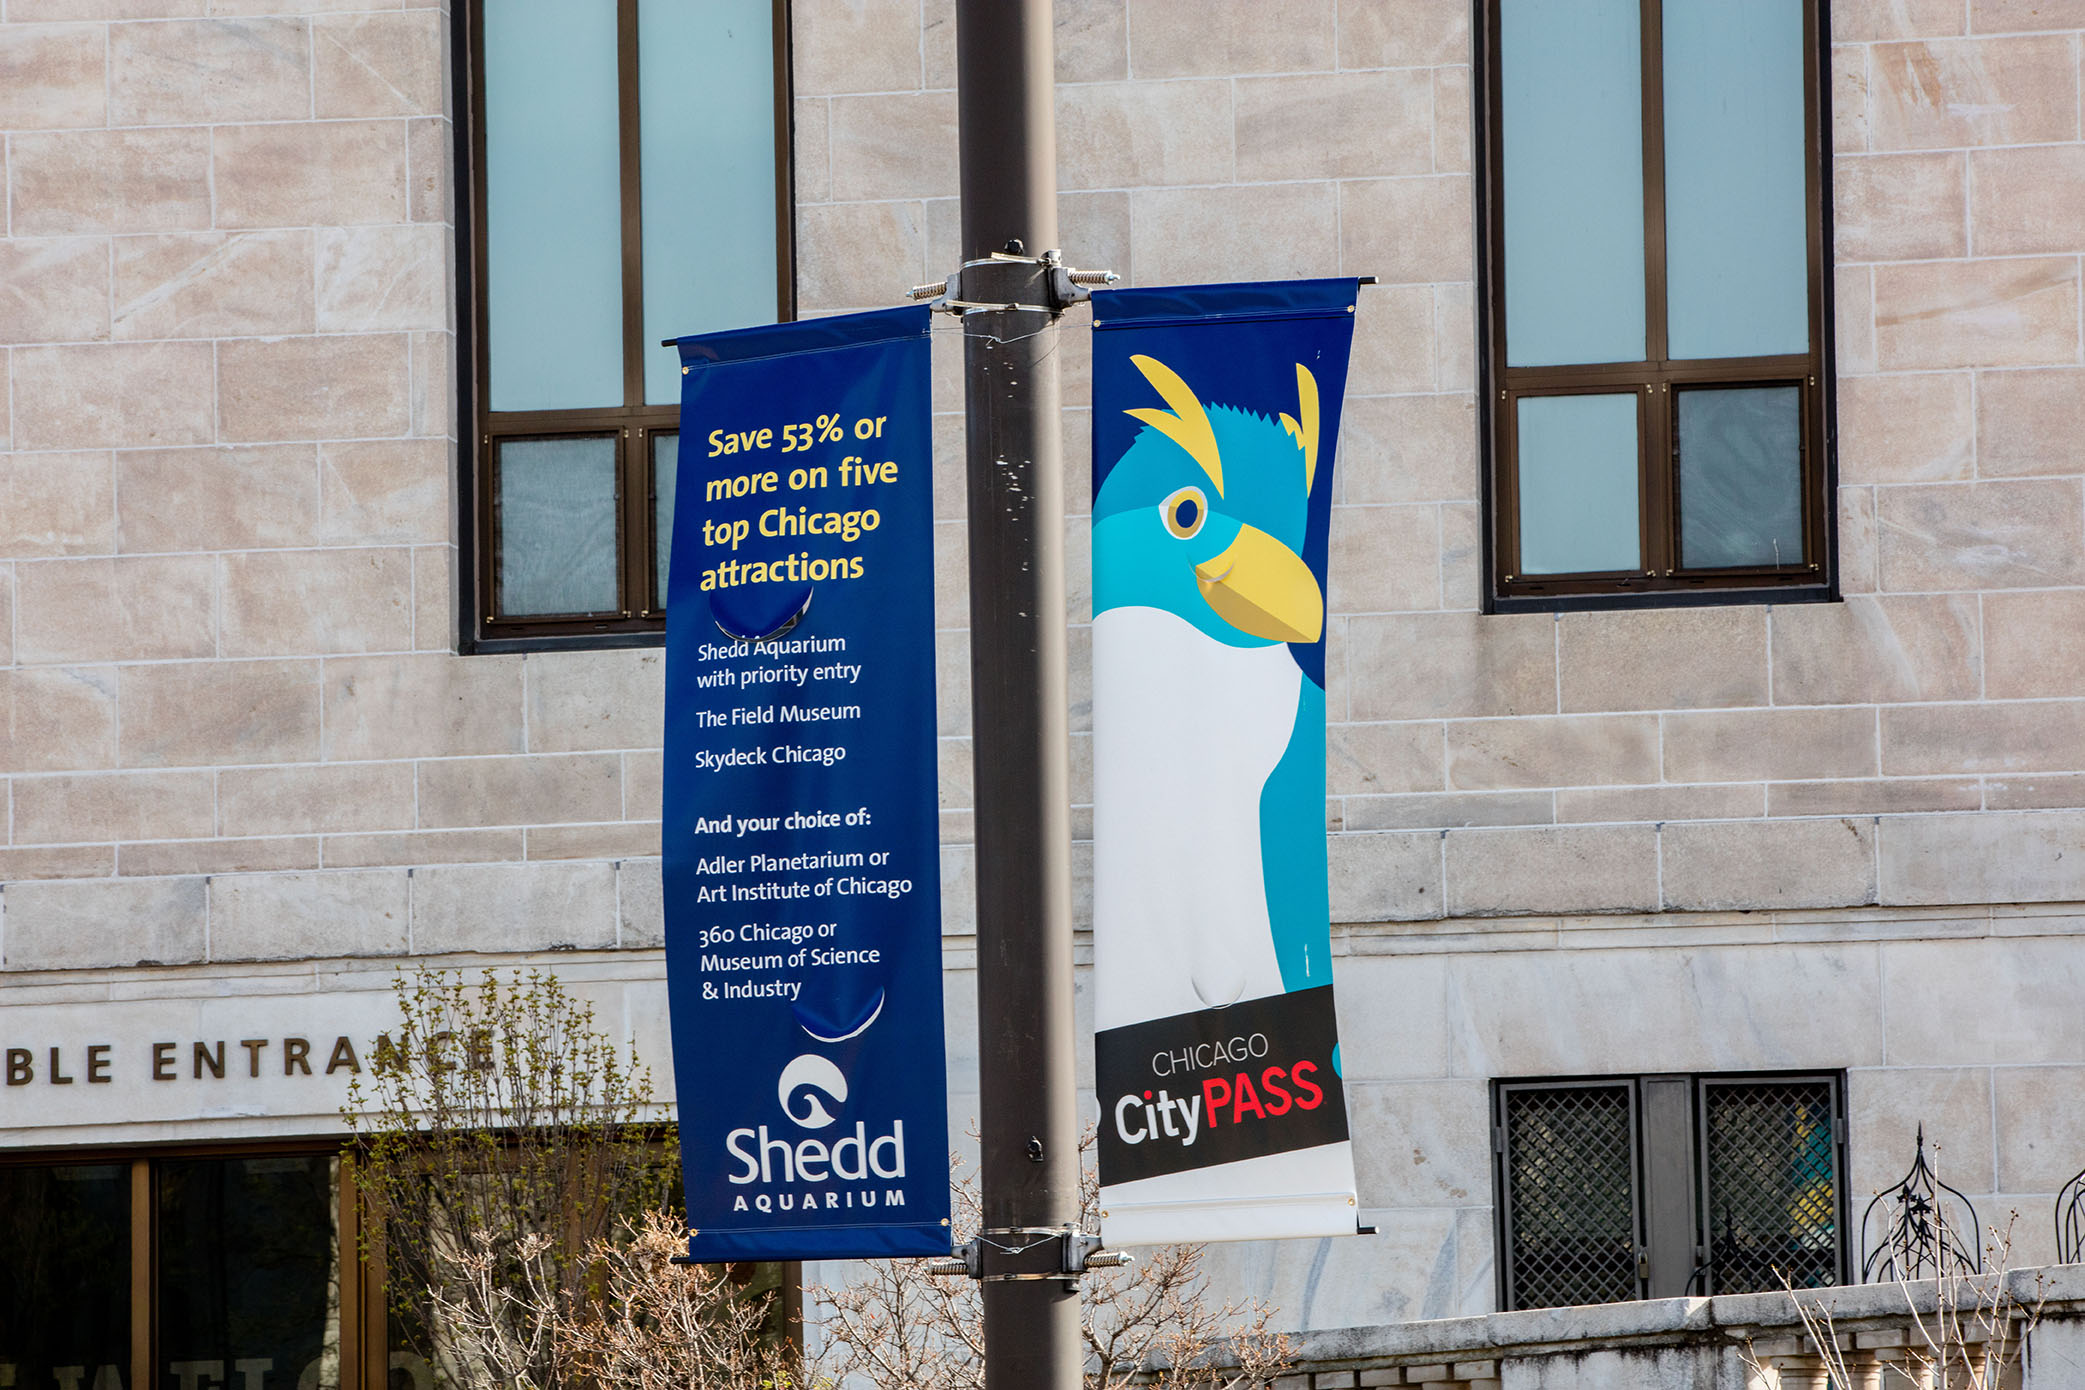 A set of street banners in front of Shedd's accessible entrance, depicting a stylized illustration of a penguin and information about CityPass.